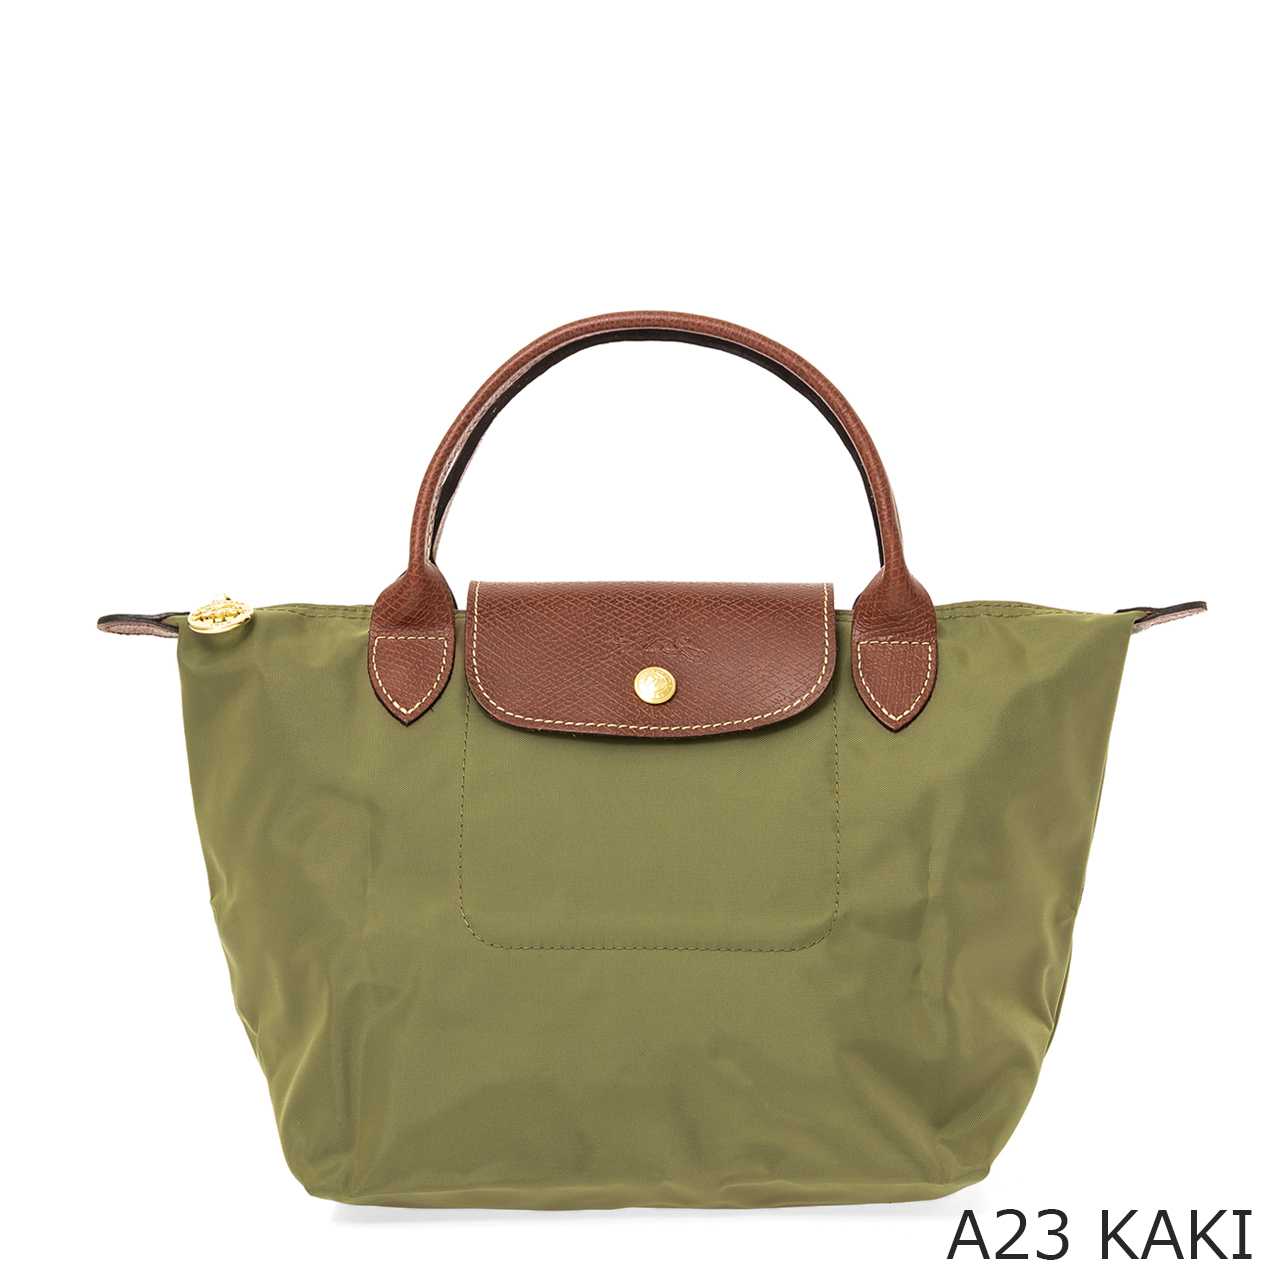 77a4f4b4db Online Discount Longchamp Le Pliage Tote Bags 1899 089 203 Chocolate ...